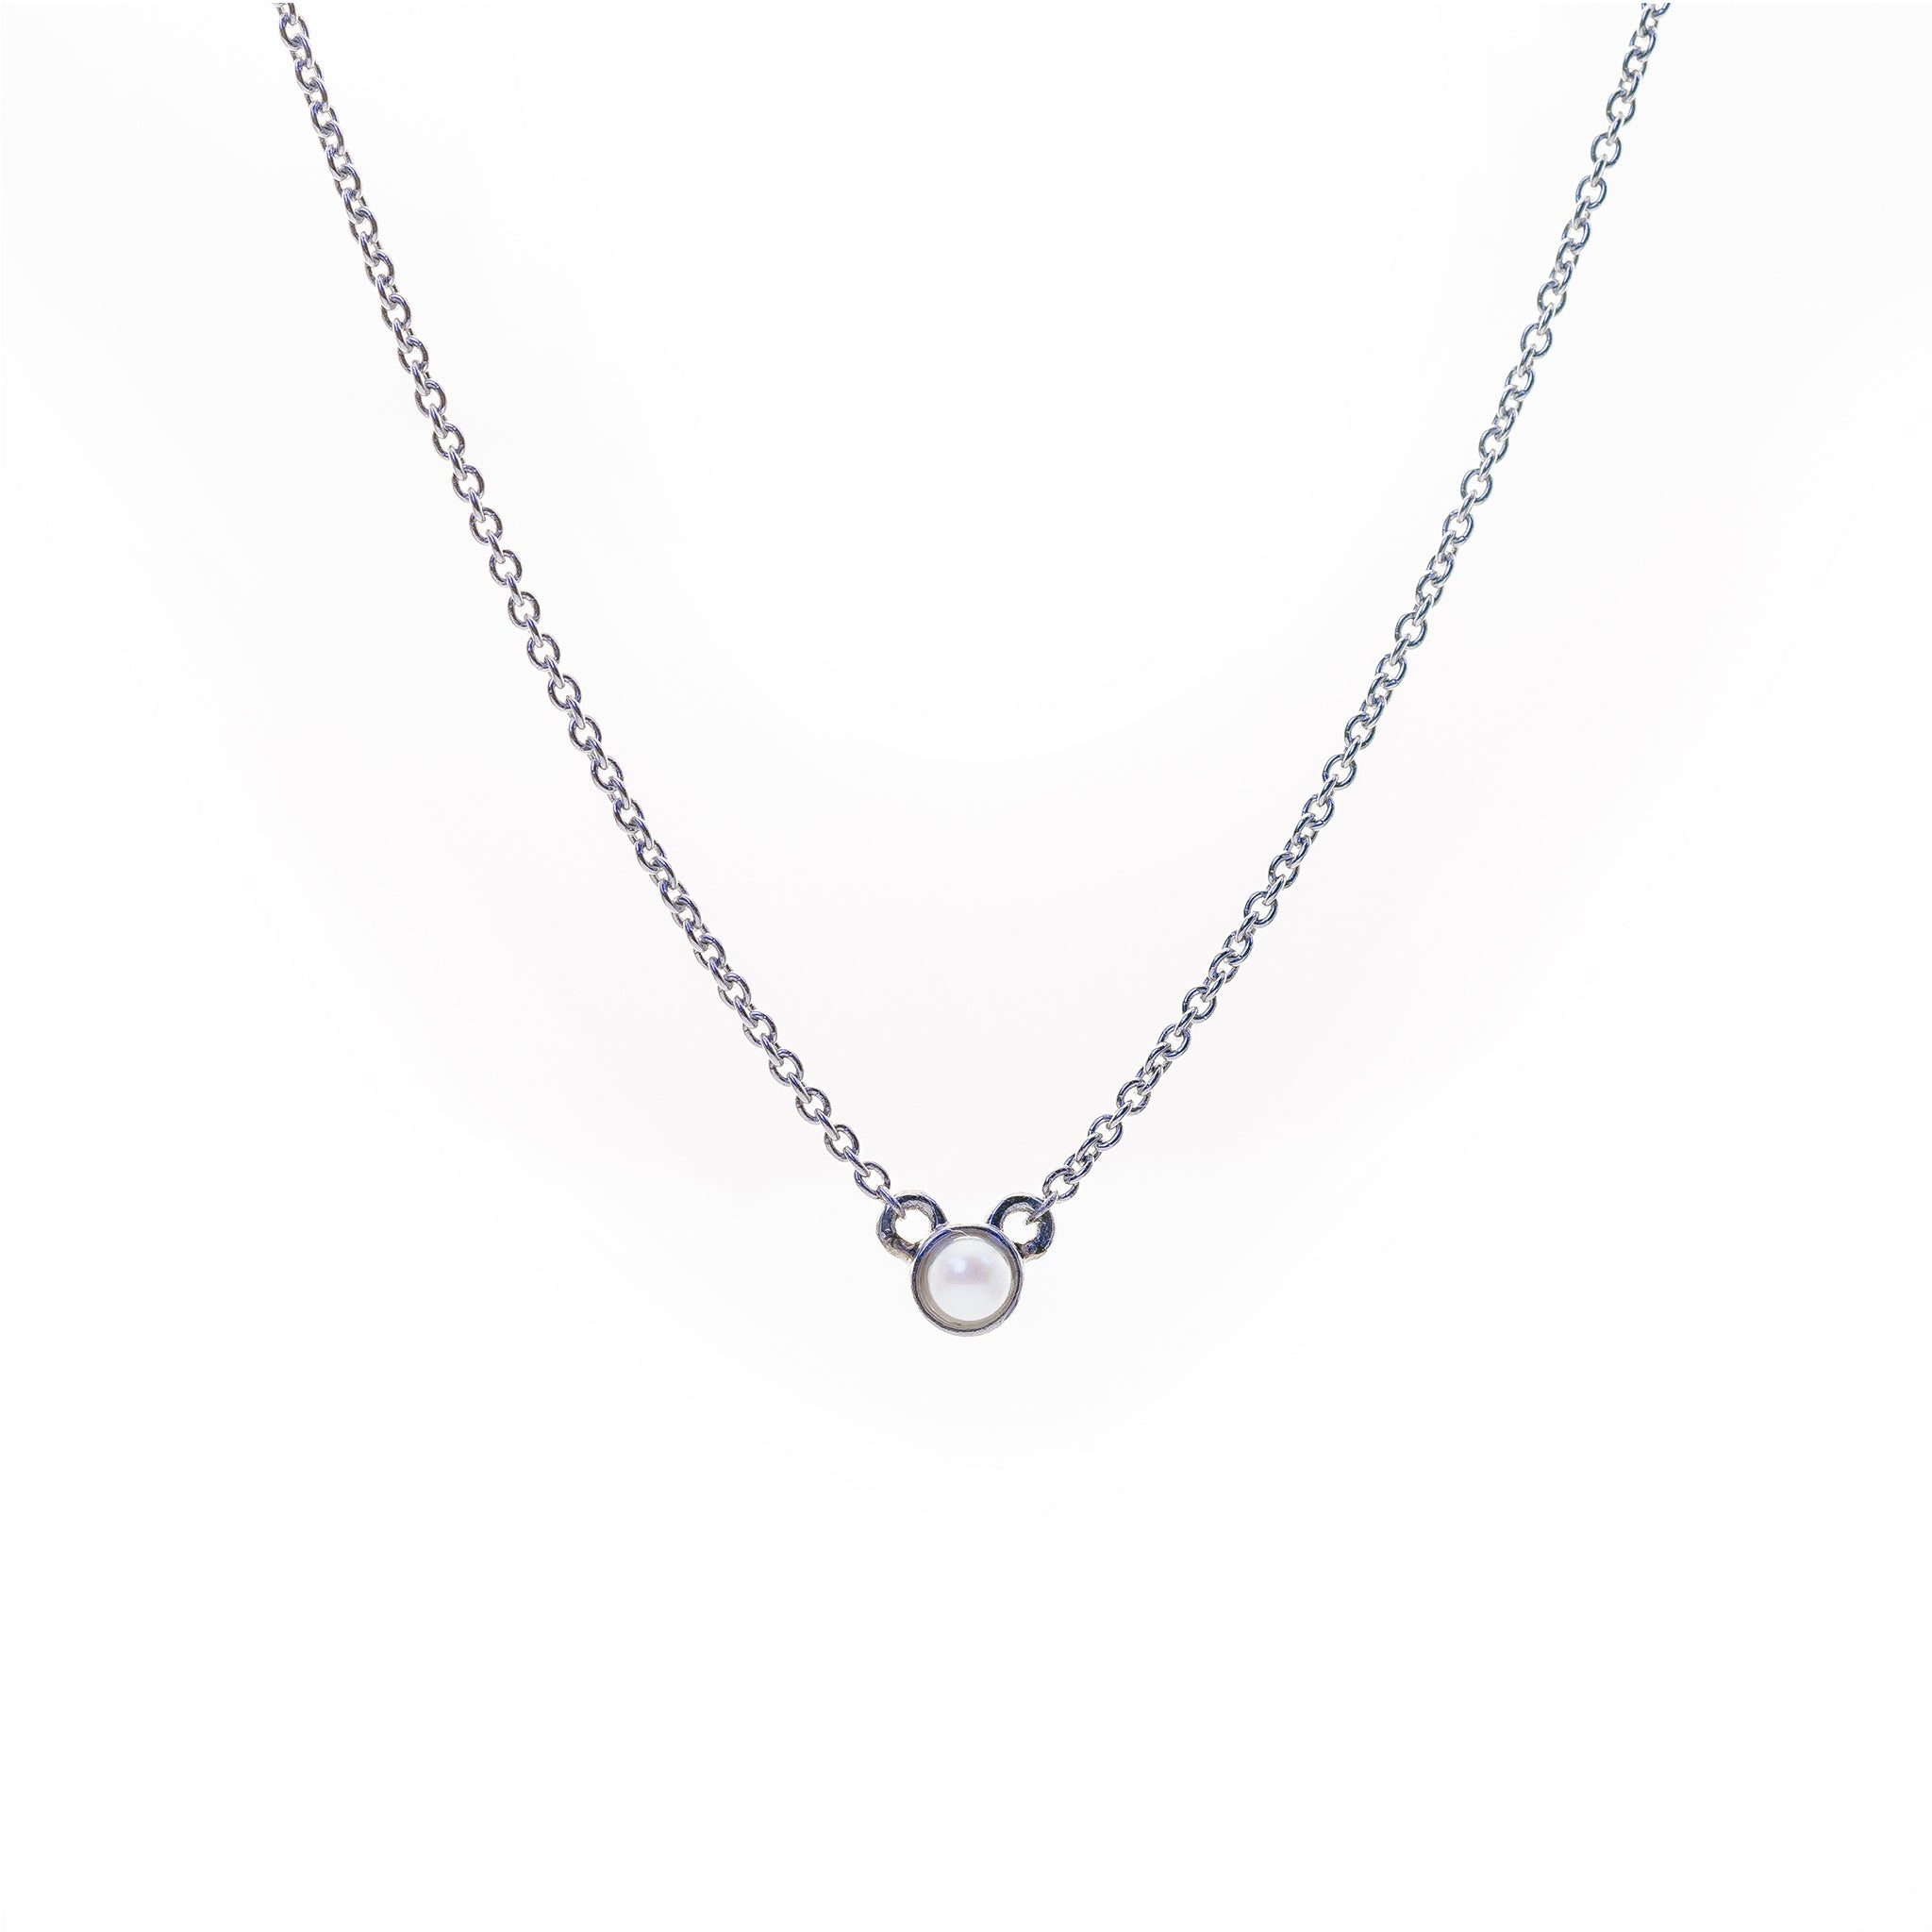 Petite Pearl Necklace // White Gold